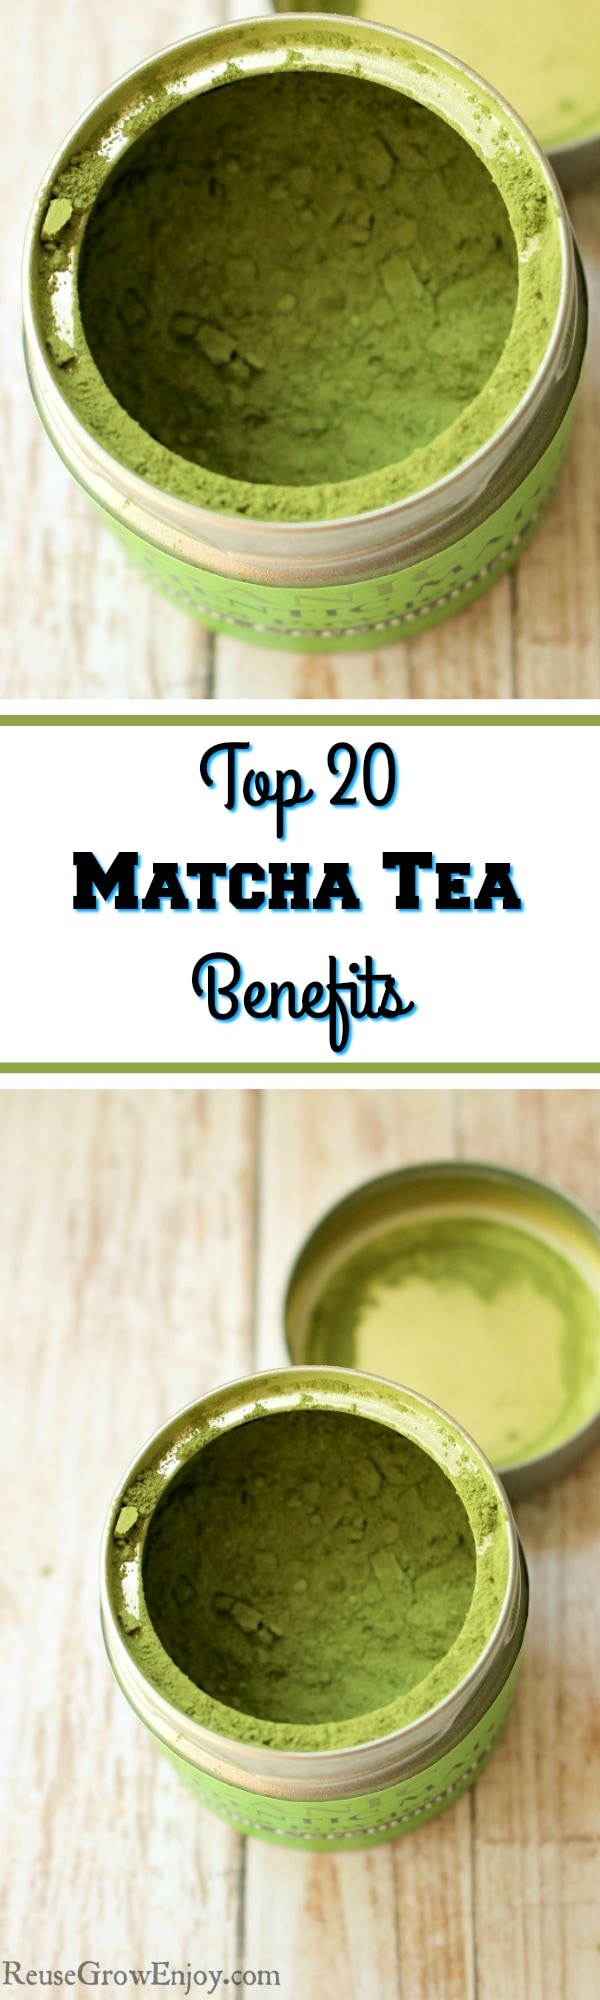 Do you use Matcha Tea? It is good for you in so many ways. Check out these Top 20 Matcha Tea Benefits!